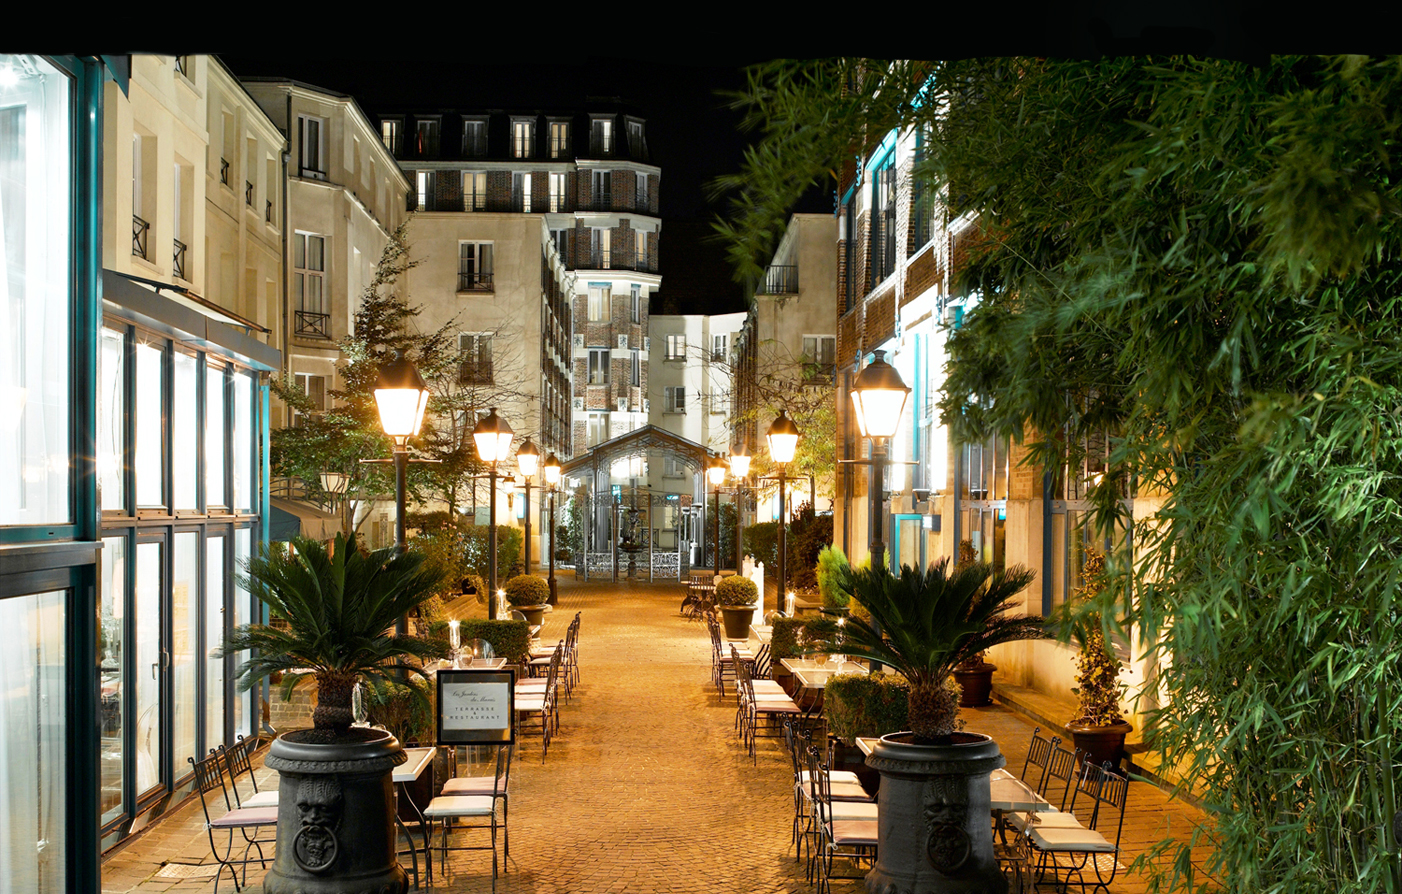 Luxury hotel in paris les jardins du marais boutique for Hotel marais paris